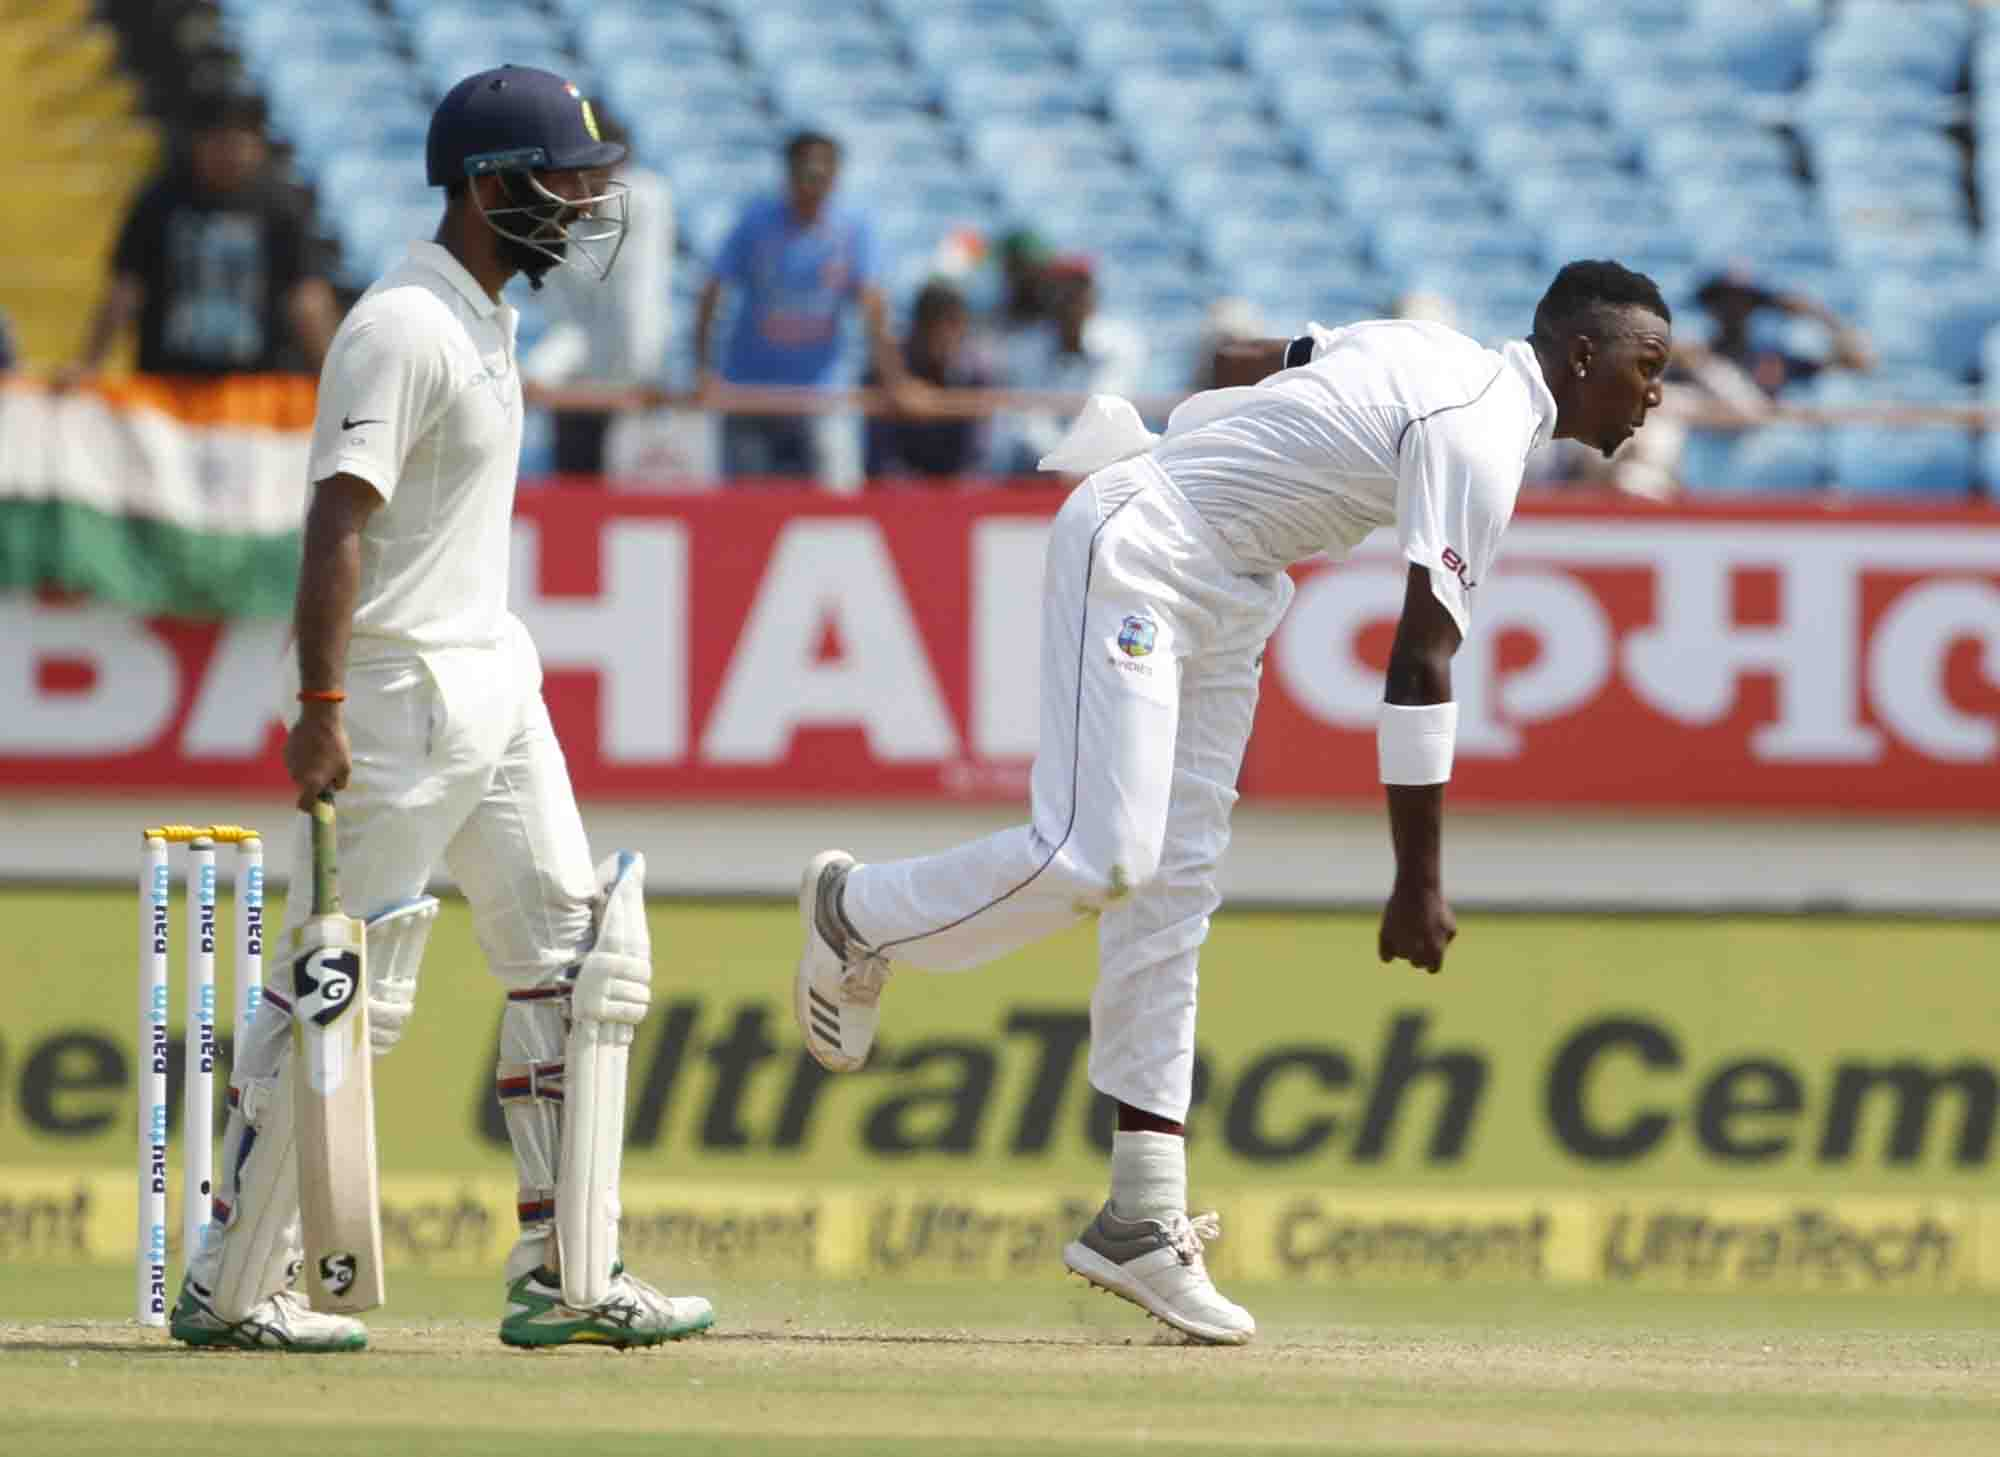 Rajkot Sherman Lewis Of West Indies In Action During The 1st Test Match Between India And West Indie